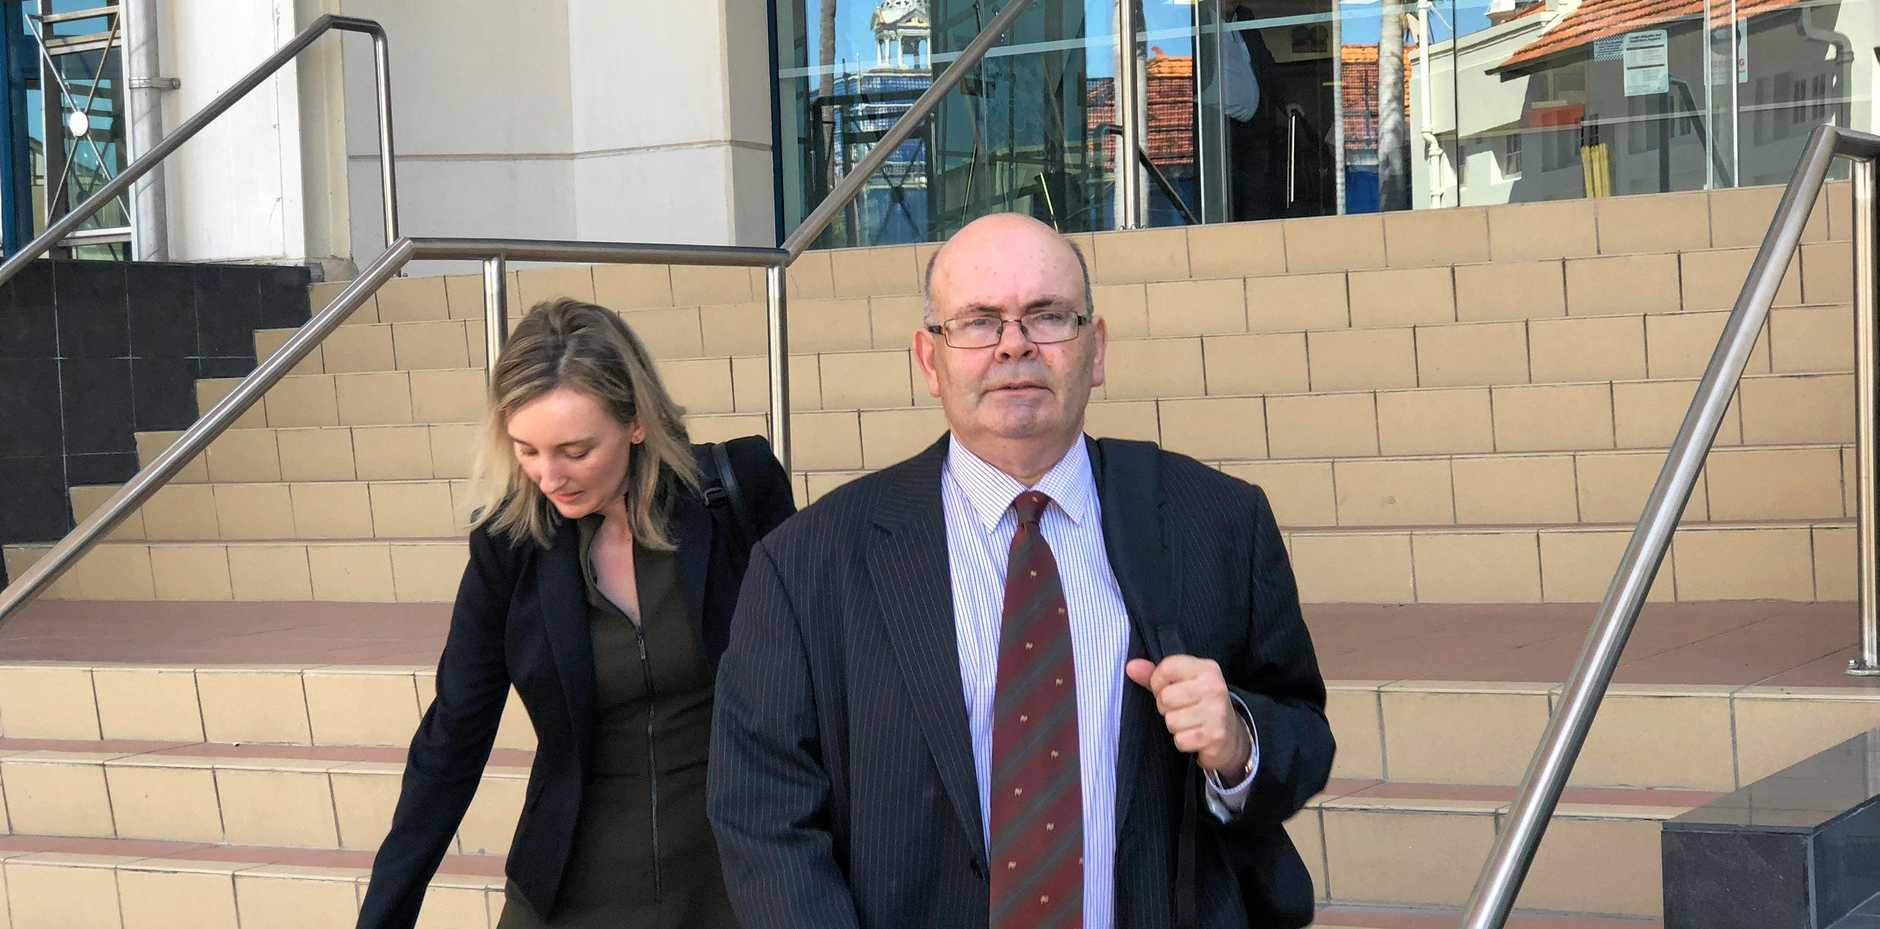 Ian John Coombe pleaded guilty on October 3 to fraudulently obtaining a $465,000 loan in June 2015. Yesterday he was sentenced to a five-year jail term.